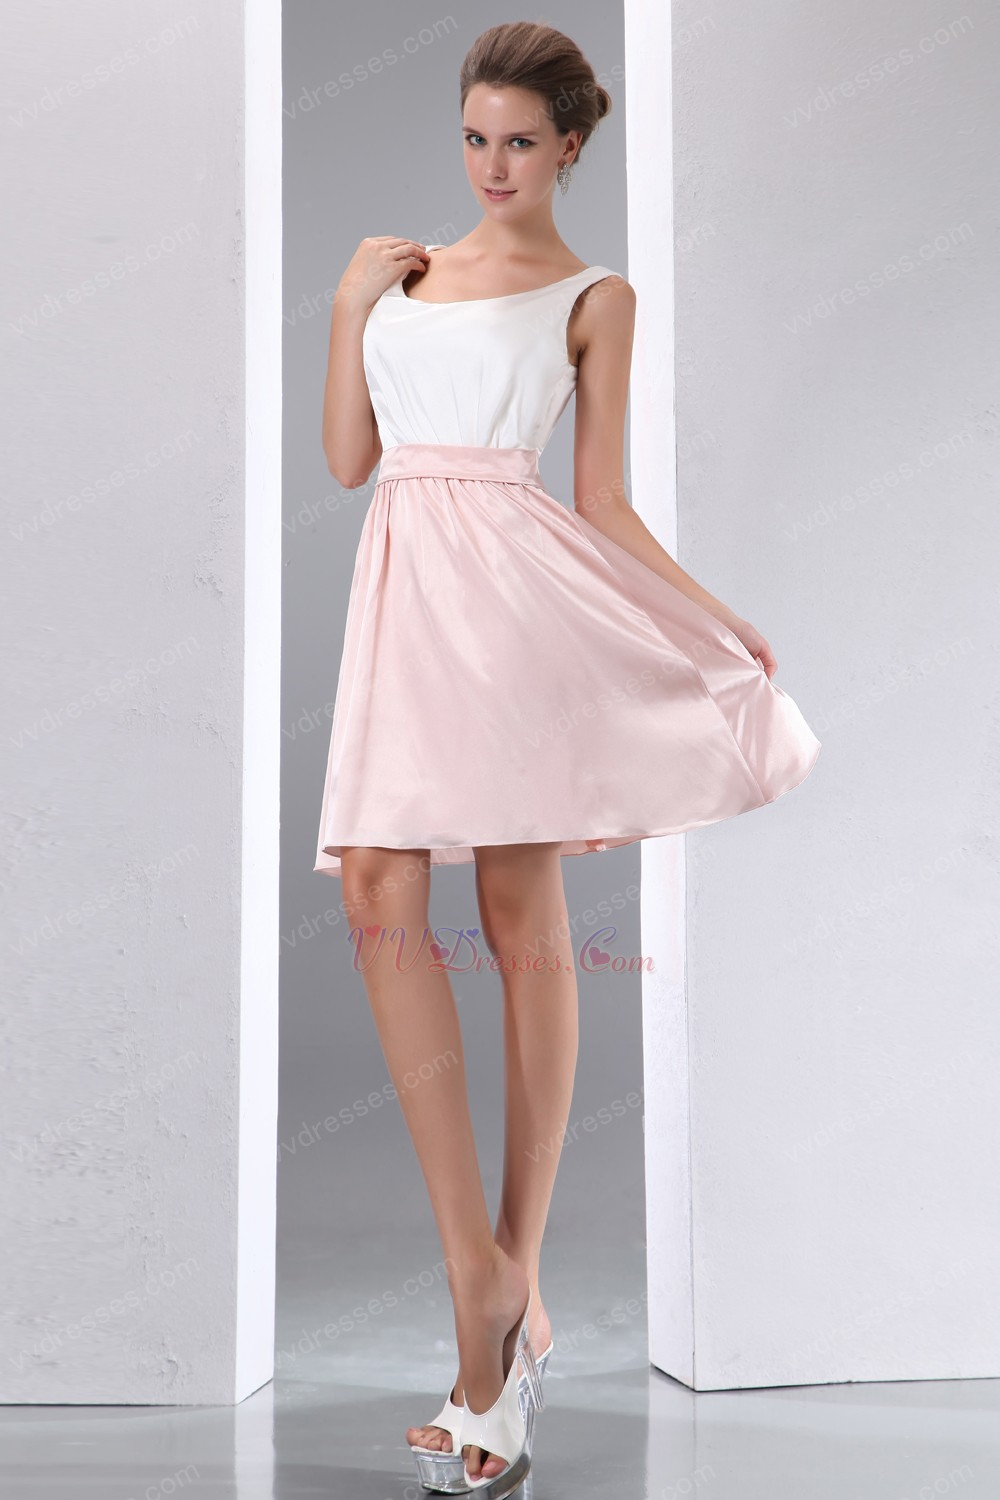 high school graduation white dresses wwwimgkidcom